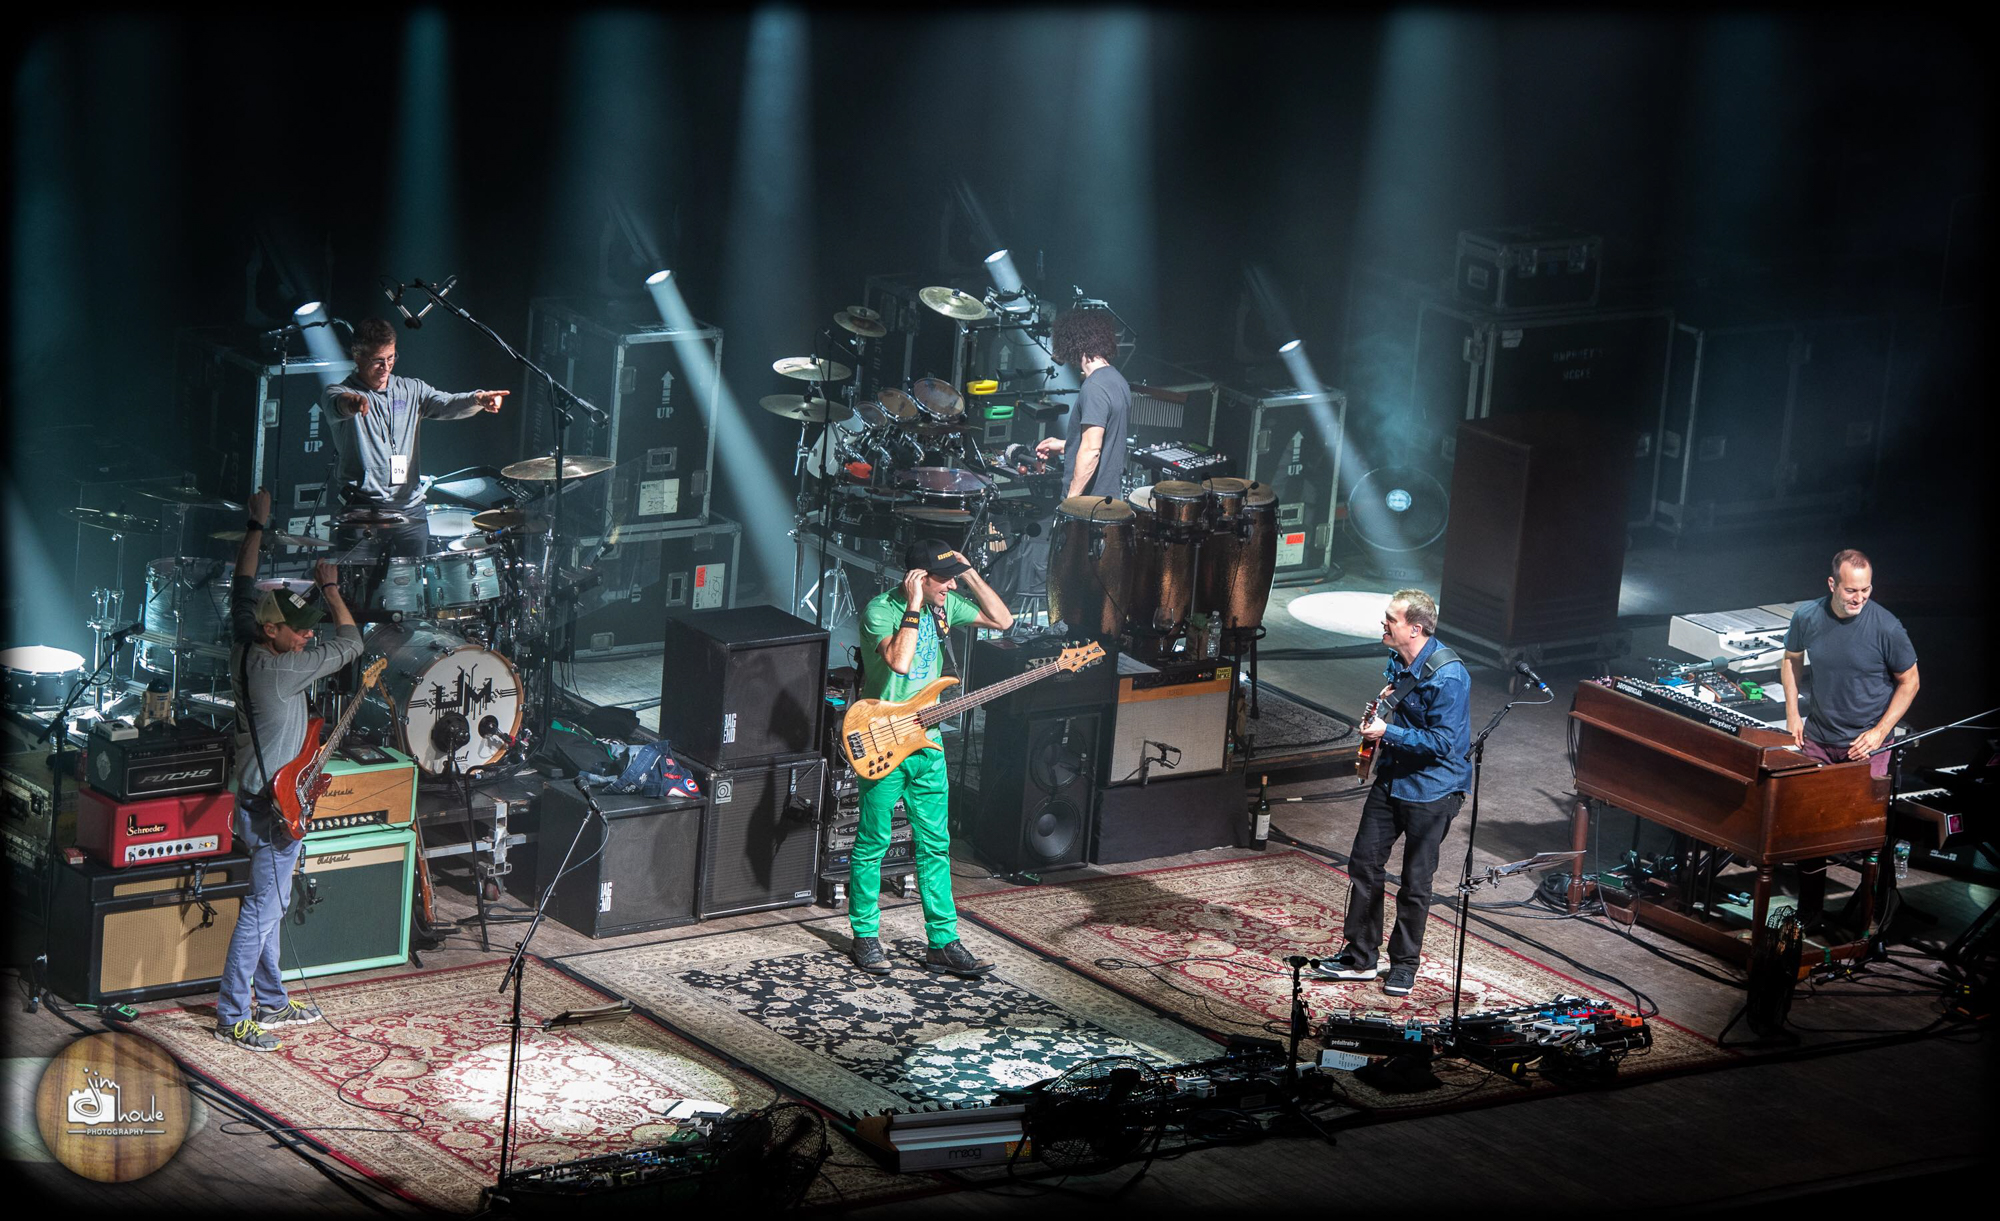 Umphrey's McGee Lights Up The Palace Theatre in Albany With Guests Vinnie Amico & Robert Walter